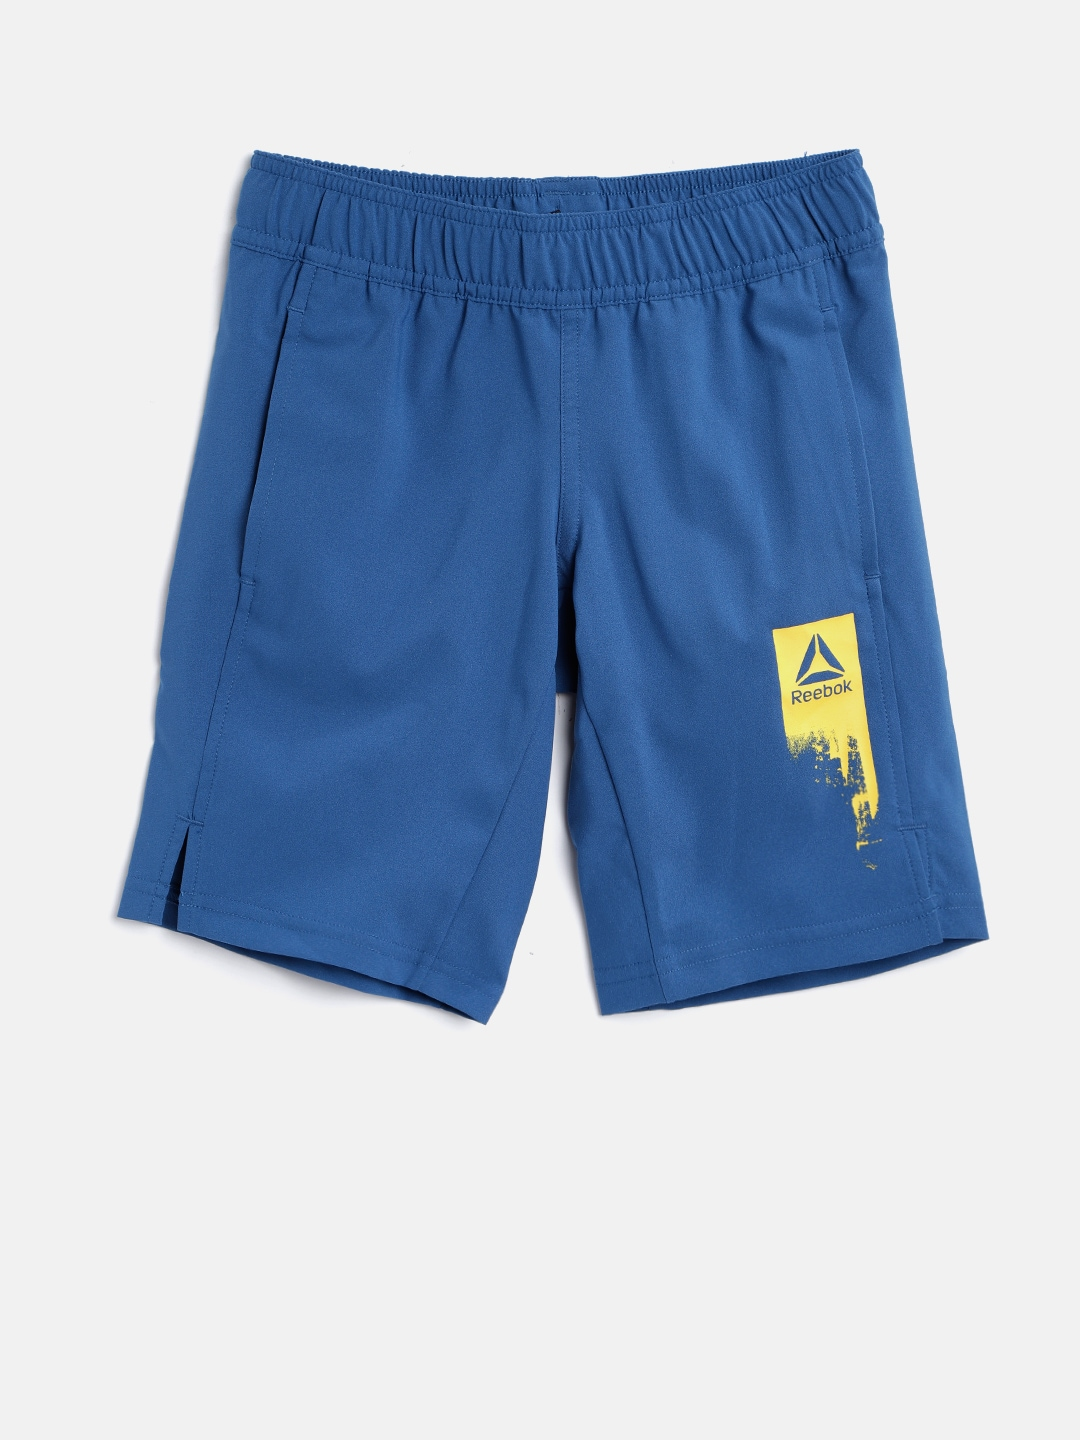 440ec7df1283 Boys Shorts Dungarees - Buy Boys Shorts Dungarees online in India